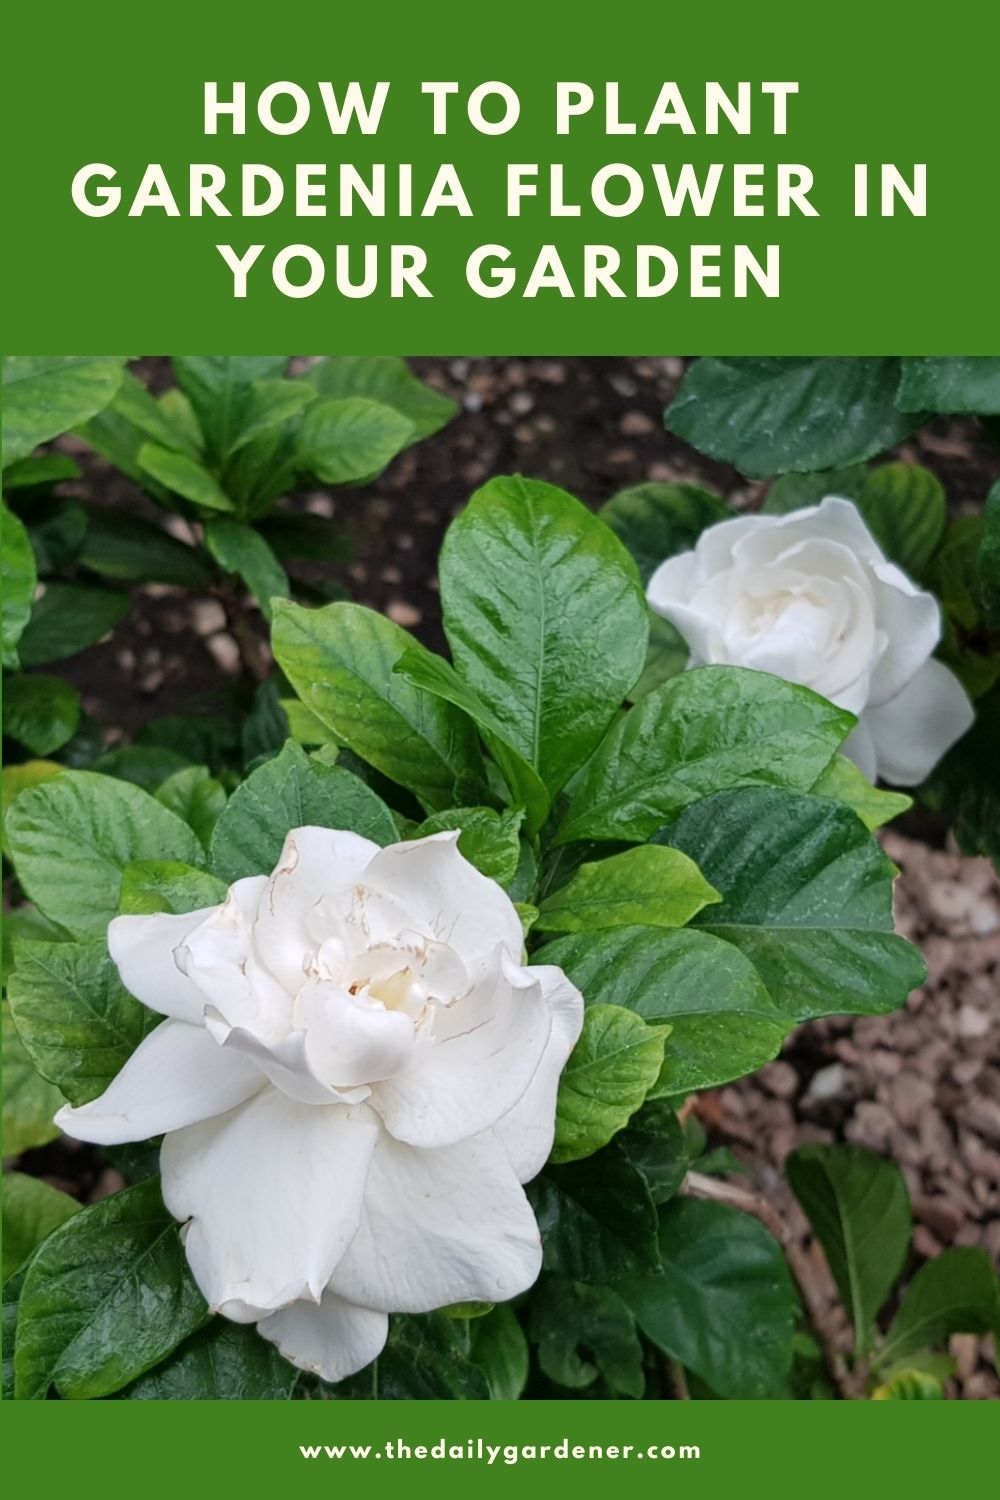 How to Plant Gardenia Flower in Your Garden (Tricks to Care!) 1